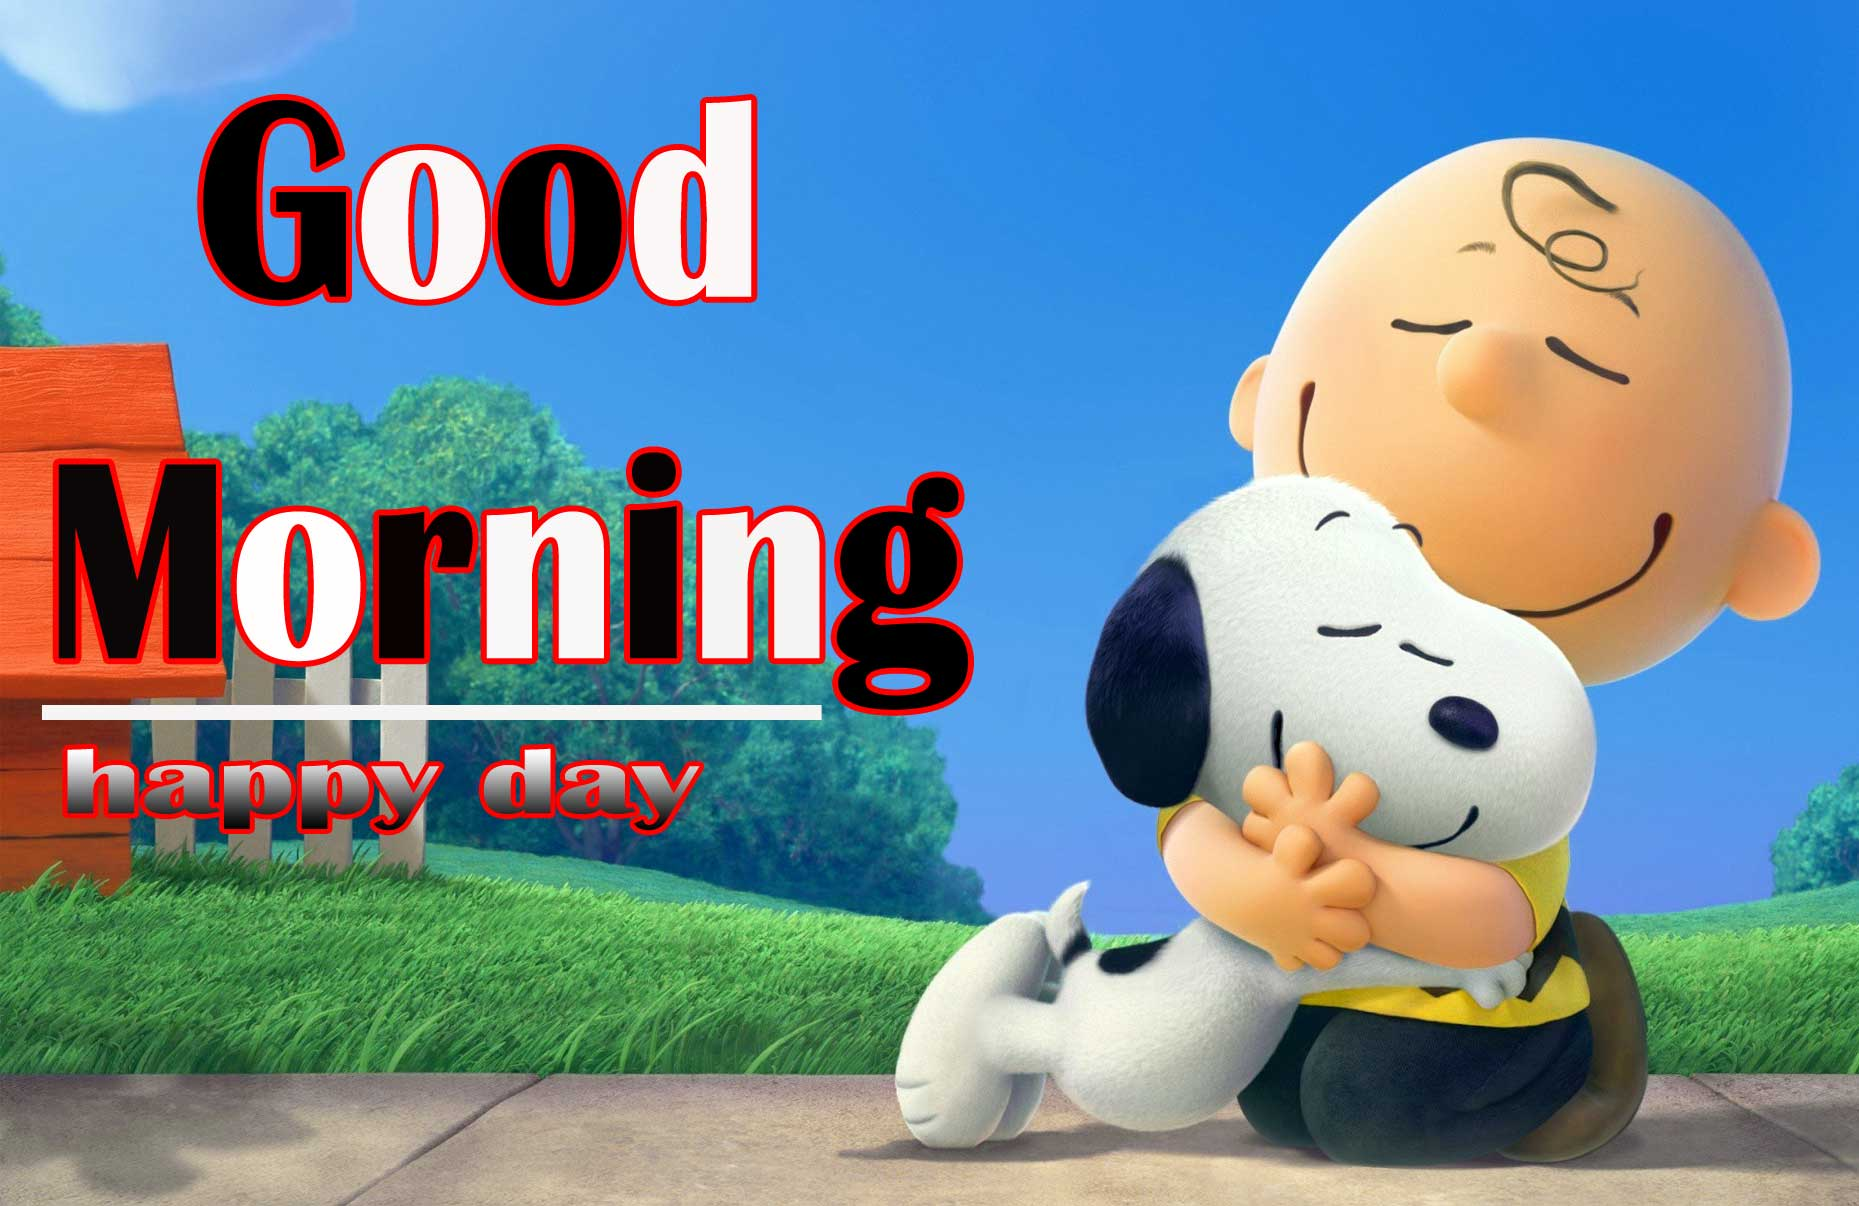 Snoopy good Morning 2